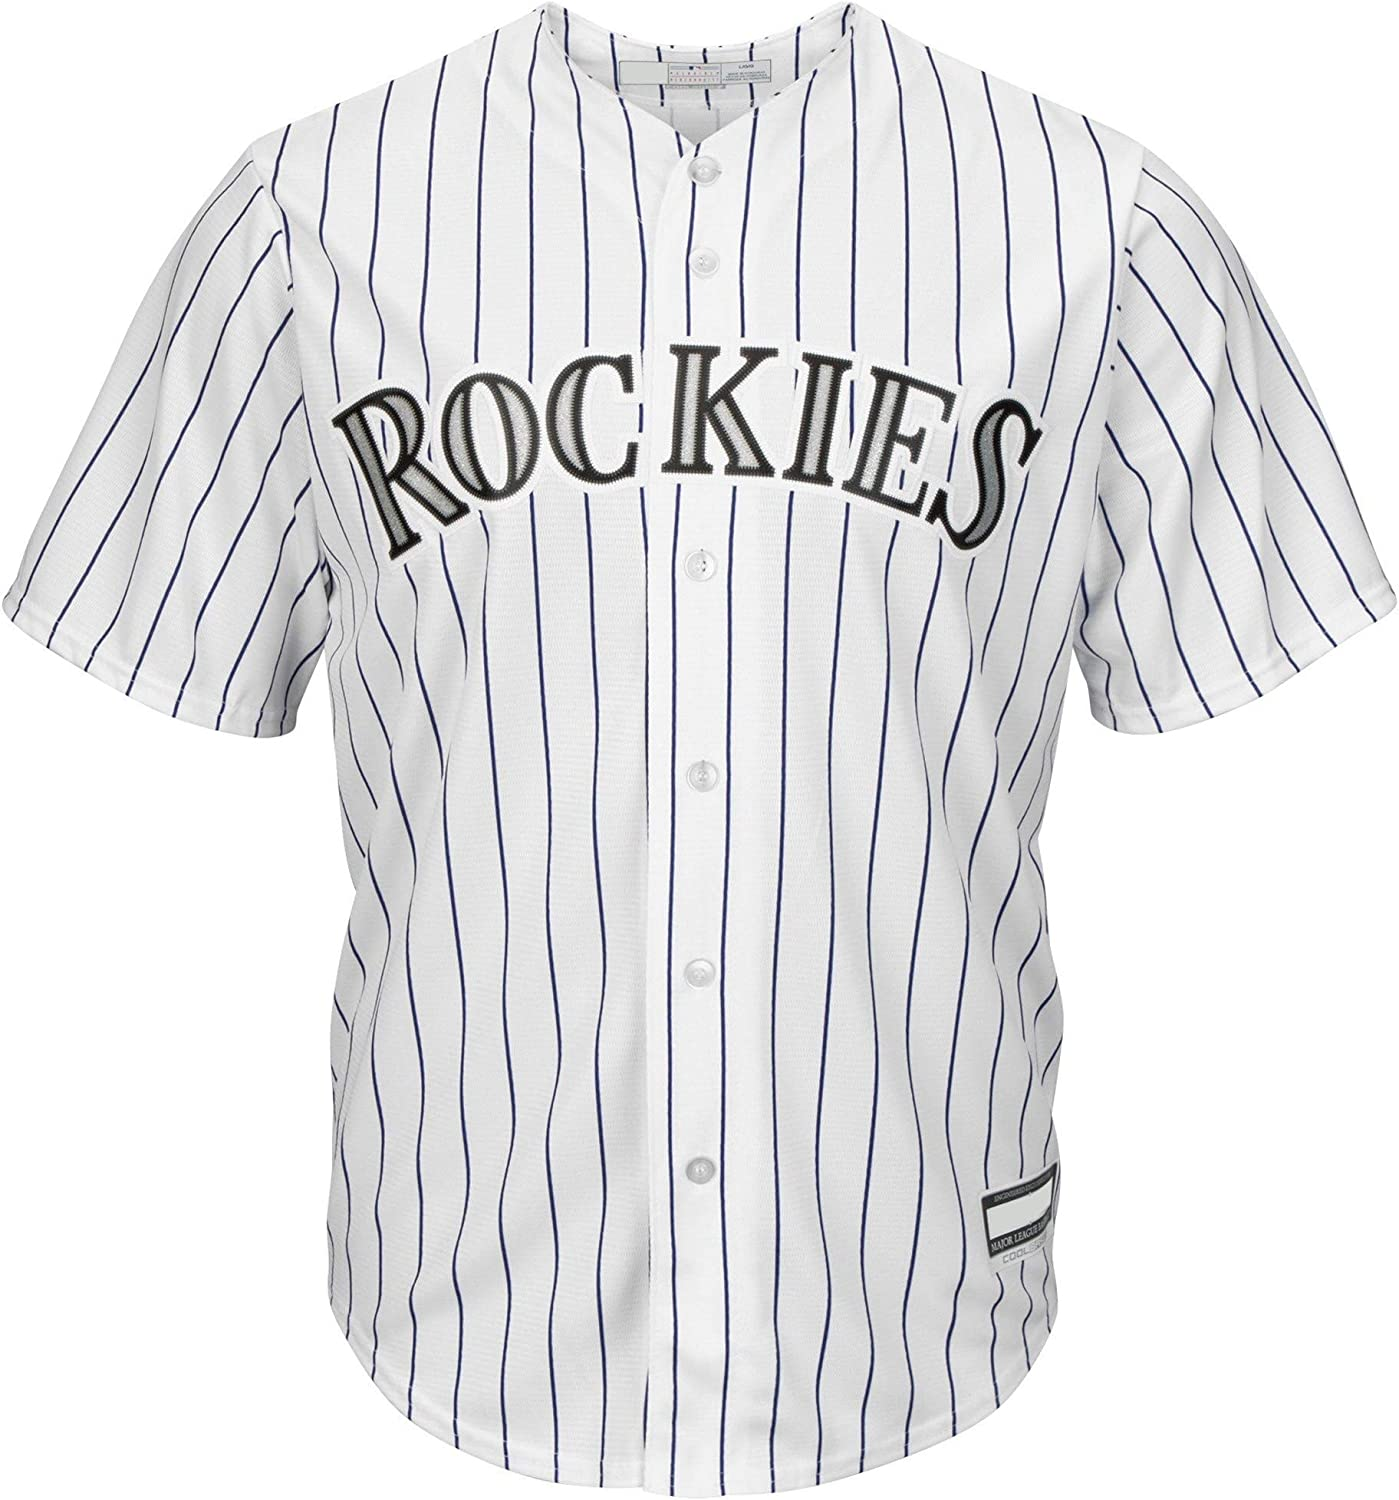 Outerstuff Charlie Blackmon Colorado Rockies MLB Boys Youth 8-20 Player Jersey